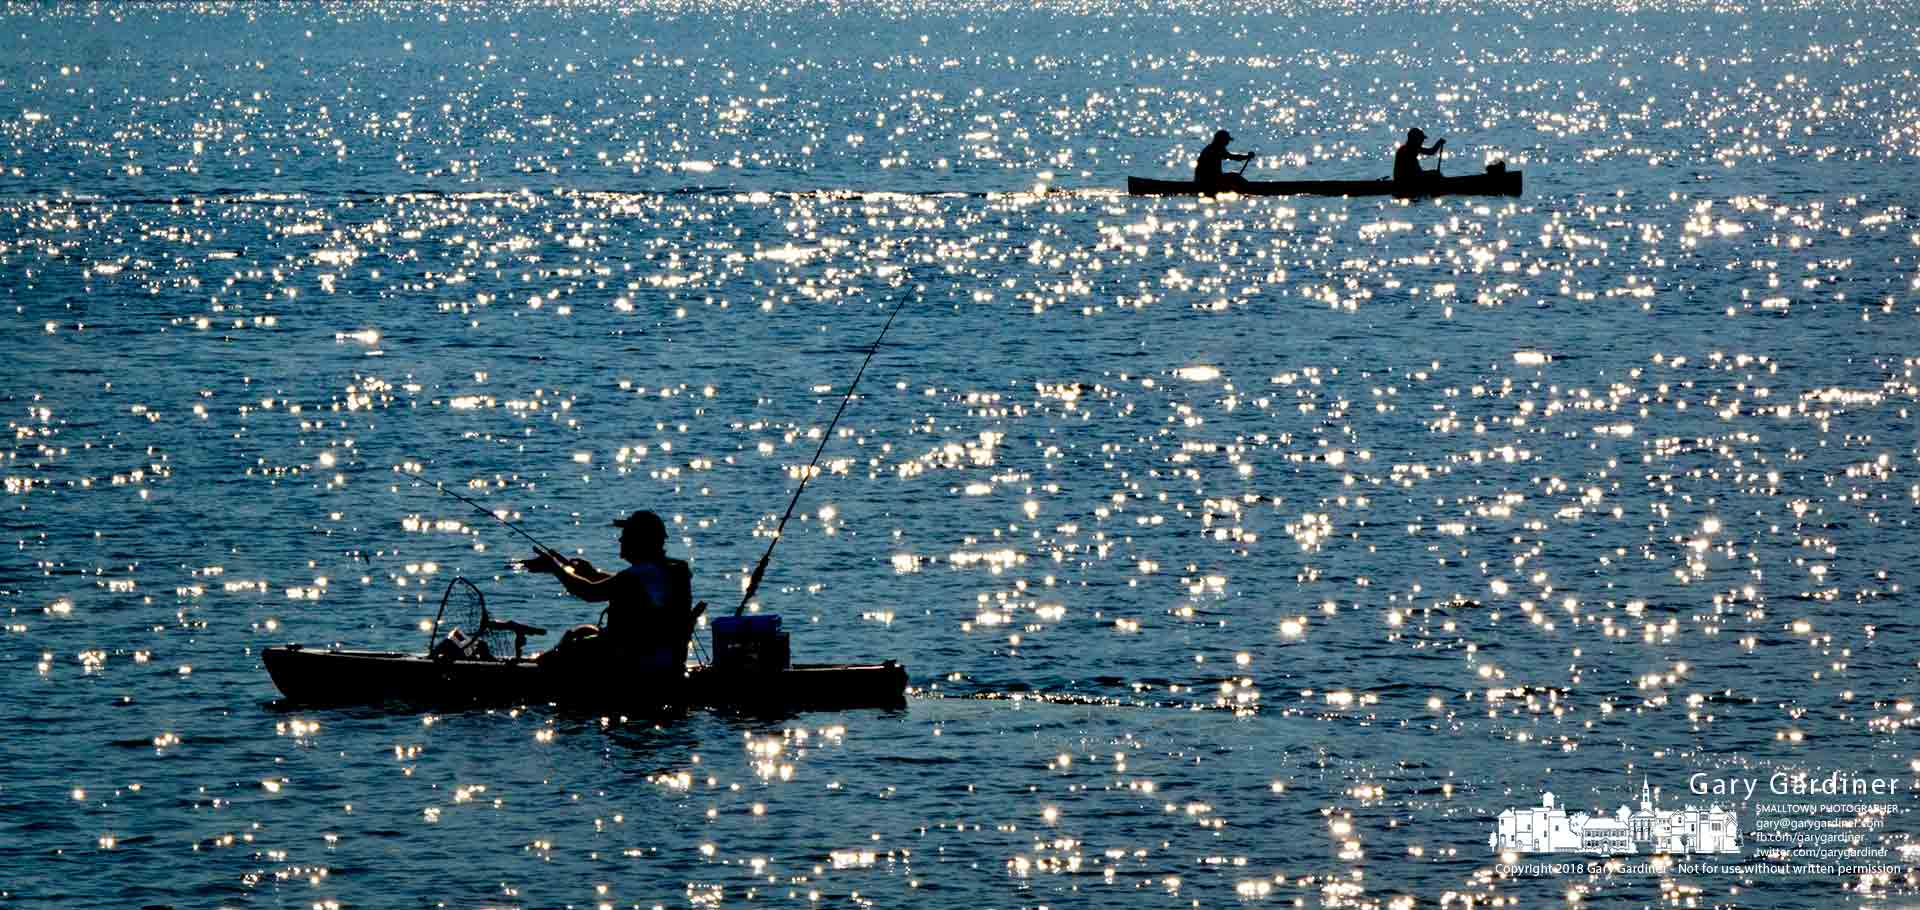 A fishing kayakerand a pair of canoeing anglers navigateopposite directions on the early morningsparkling watersof Hoover Reservoir. My Final Photo for July 28, 2018.